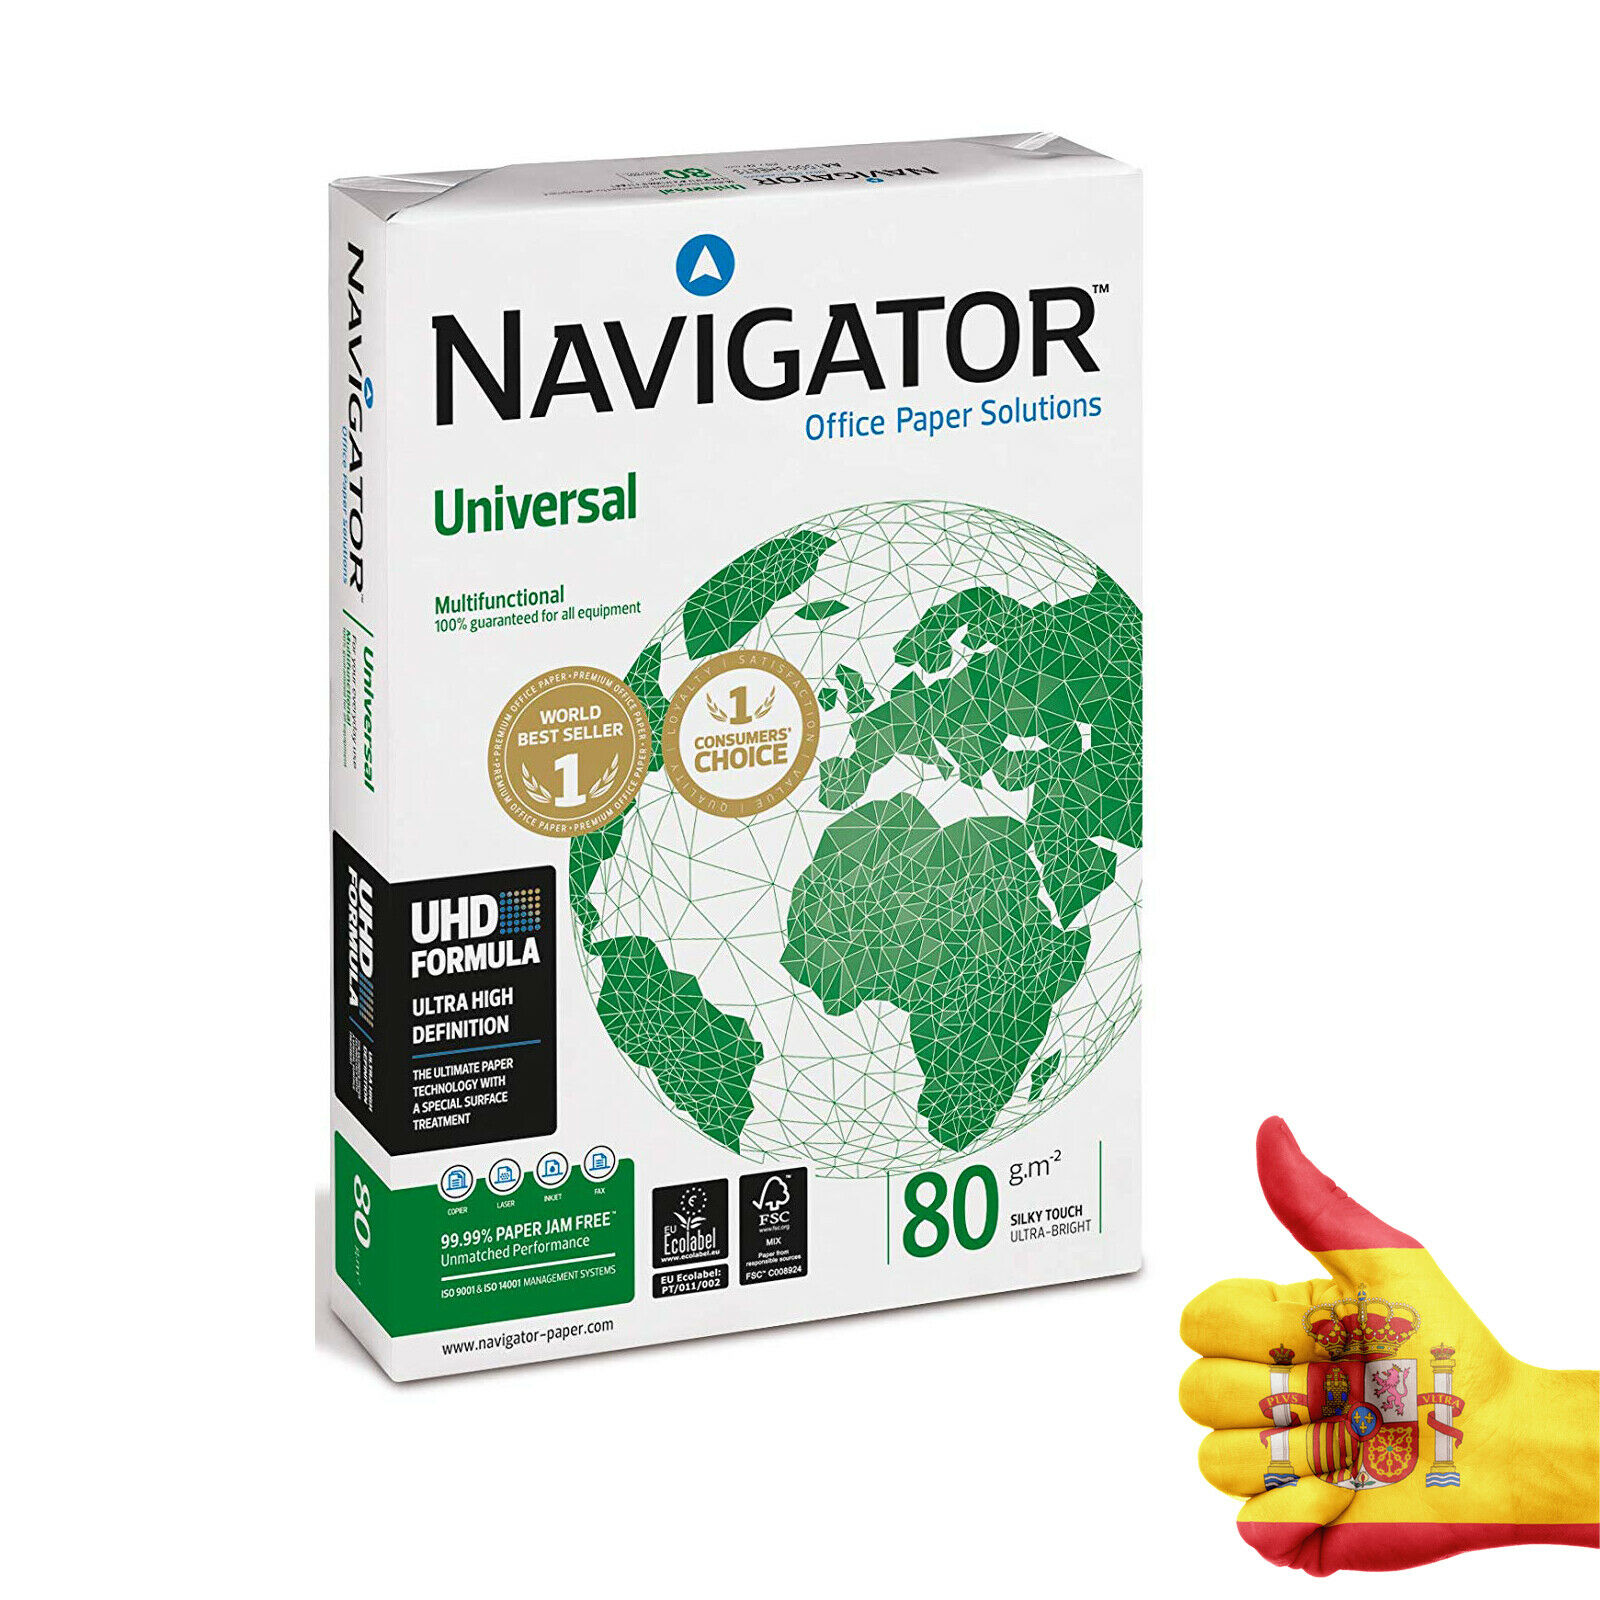 500 Stock Sheets Photo Navigator A4's Paper For Inkjet Printer Supplies From Images Printout